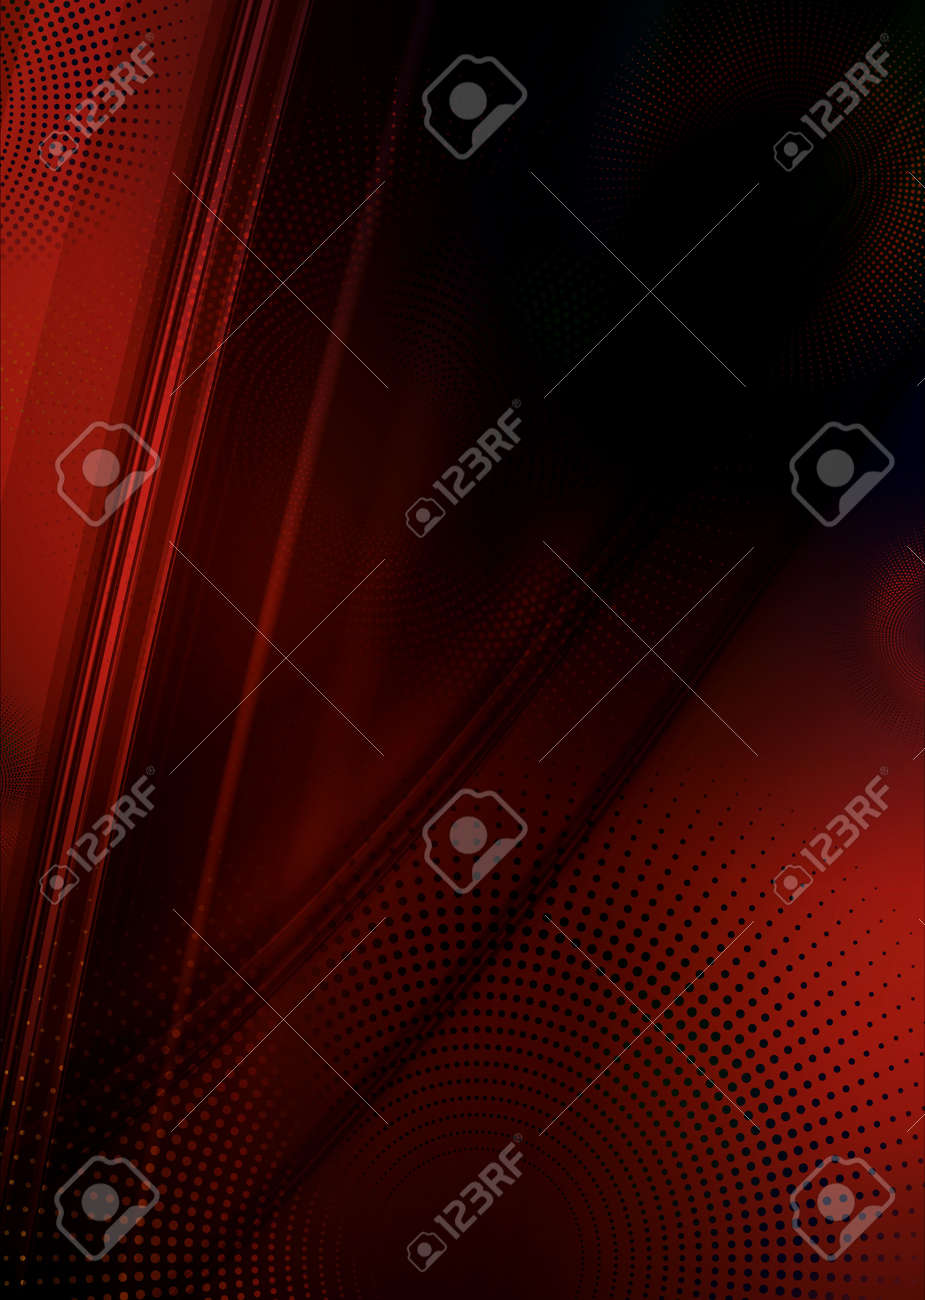 Red and black abstract flow background with copyspace Stock Photo - 4160918